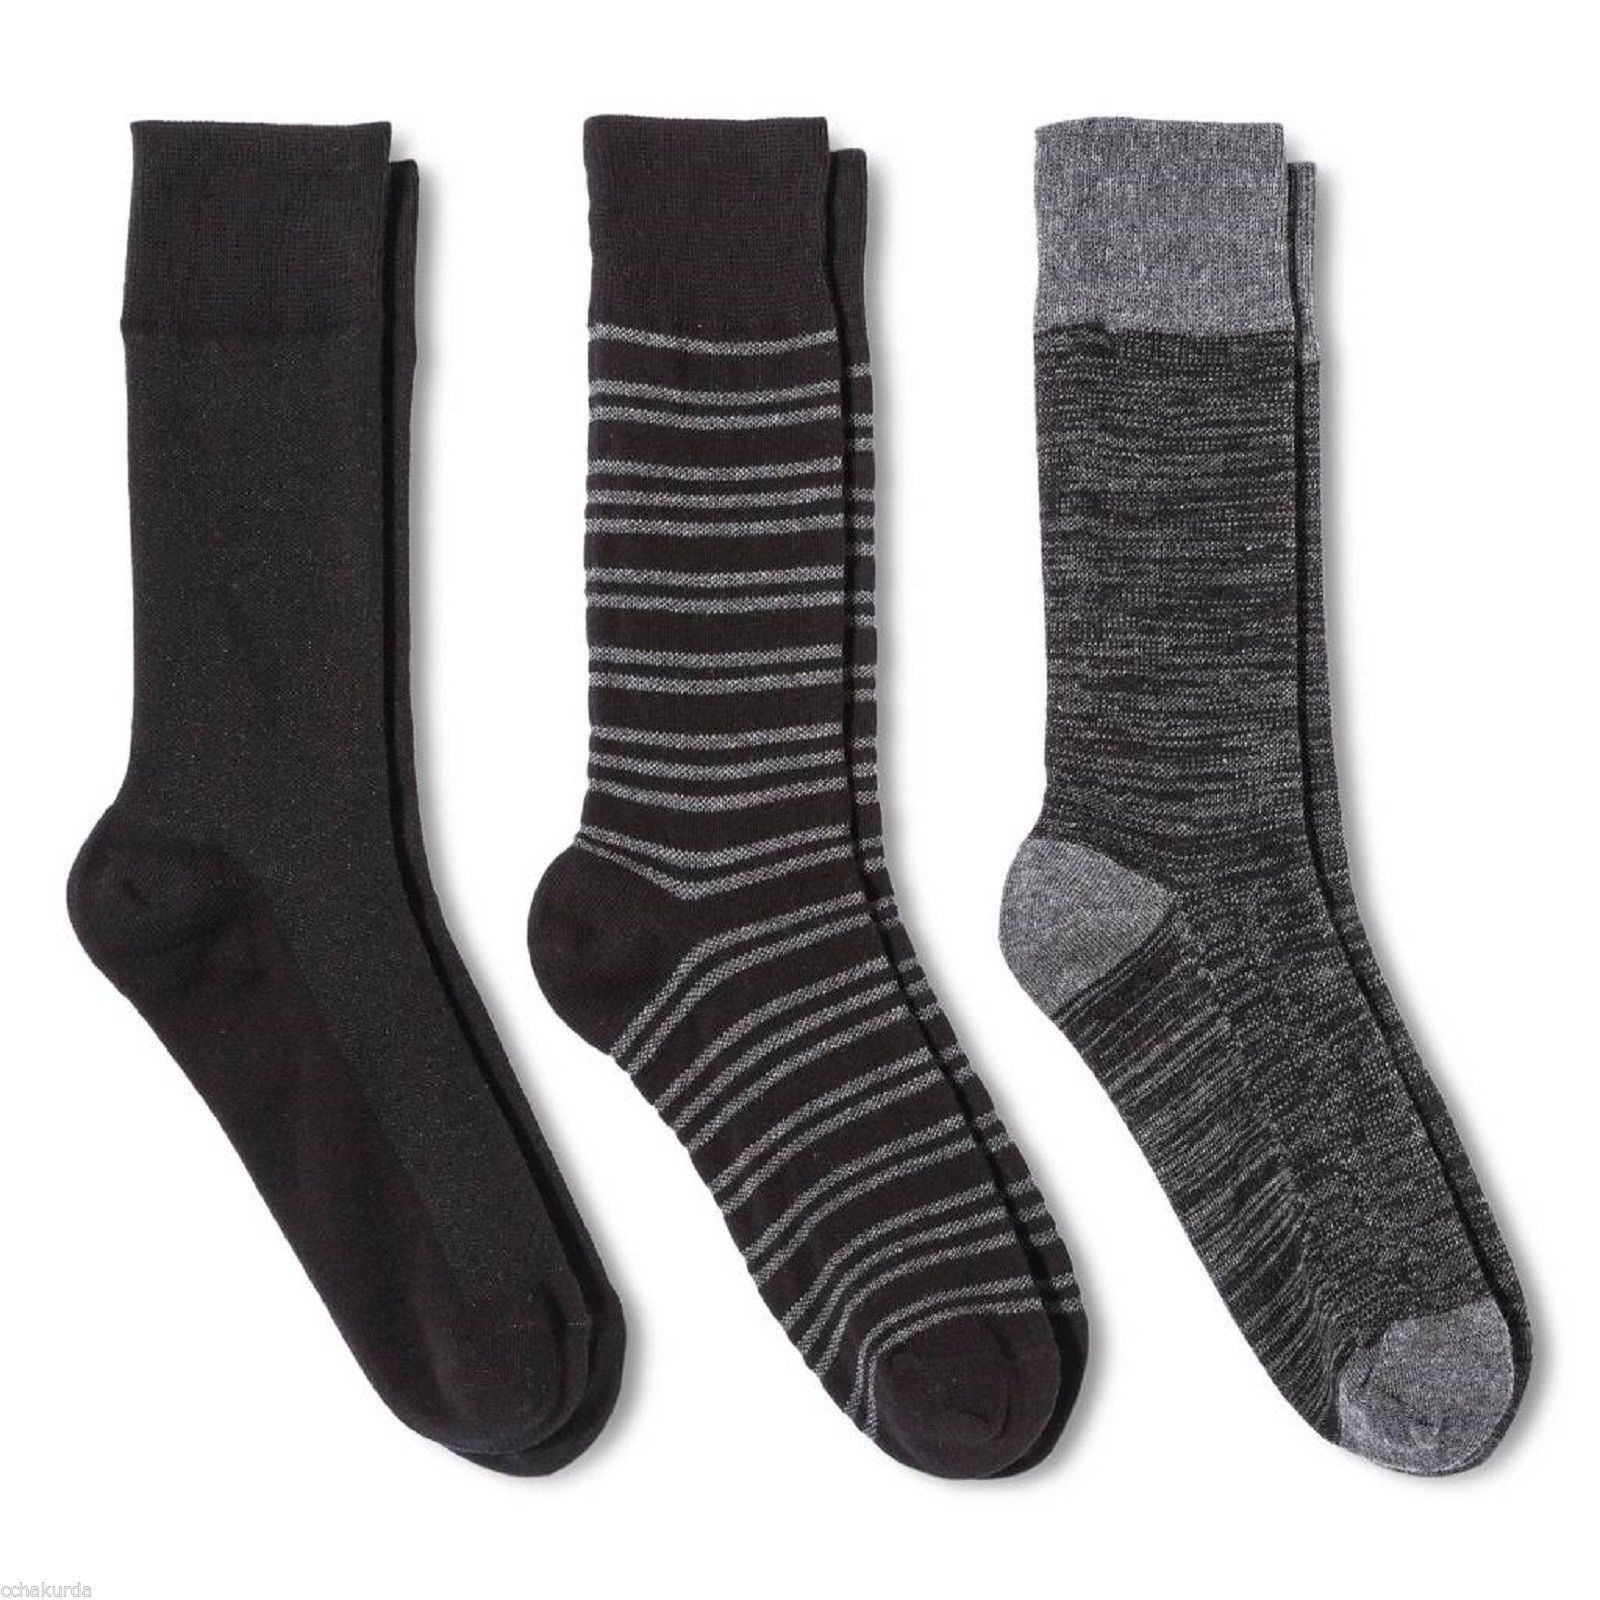 Merona NEW Mens 3 pair Dress Crew Socks 6 12 Gray Stripes Black Heather Solid